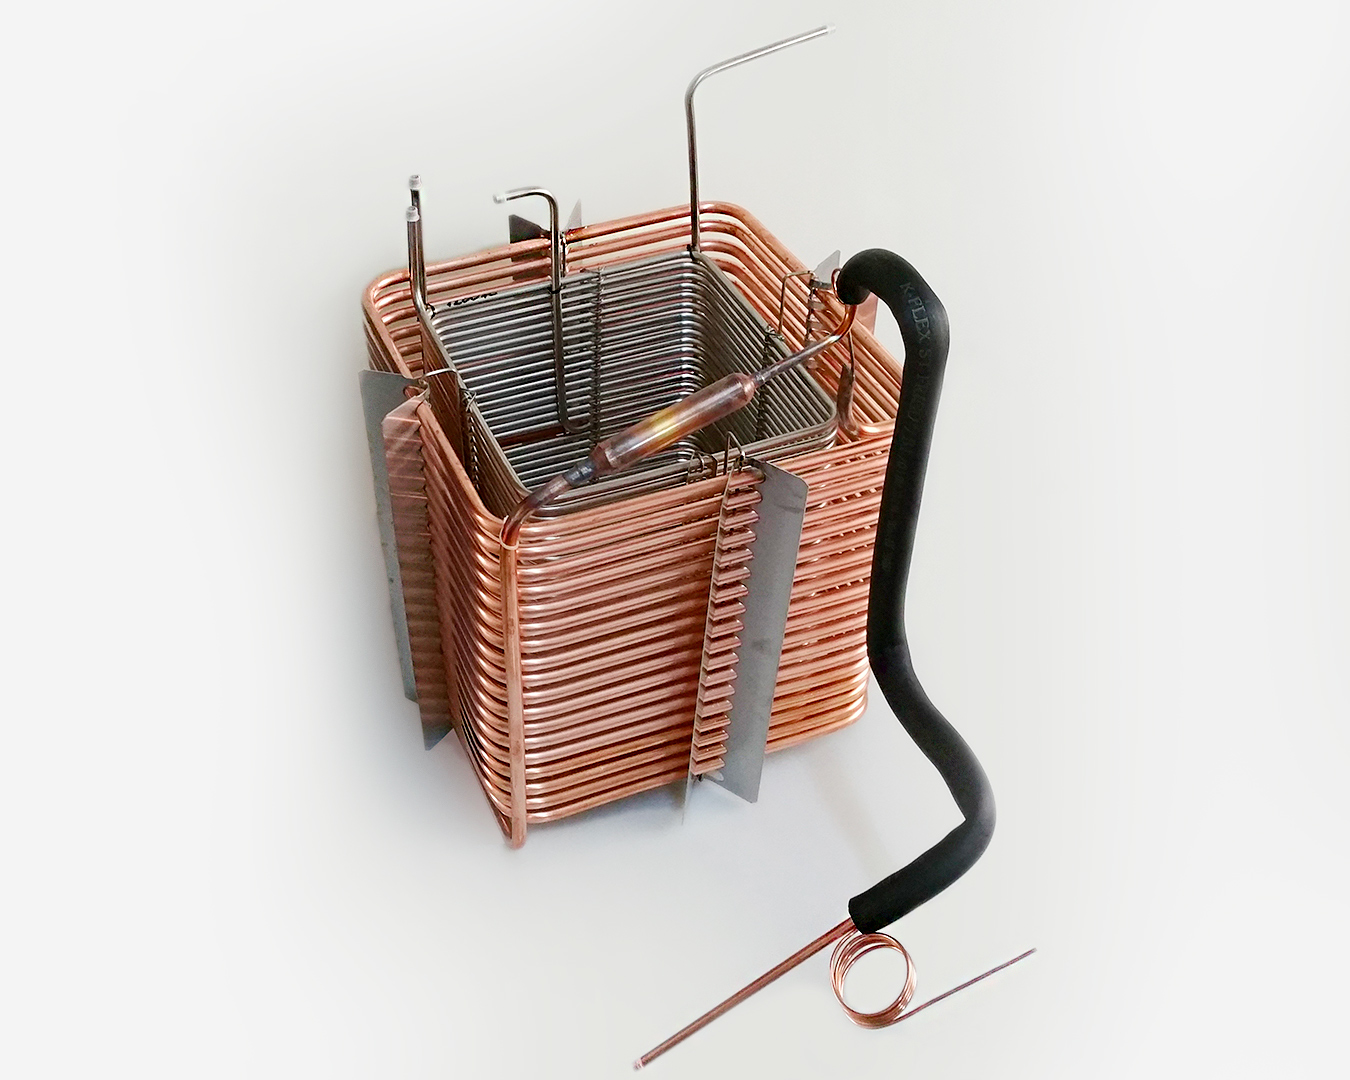 Product picture of Evaporator